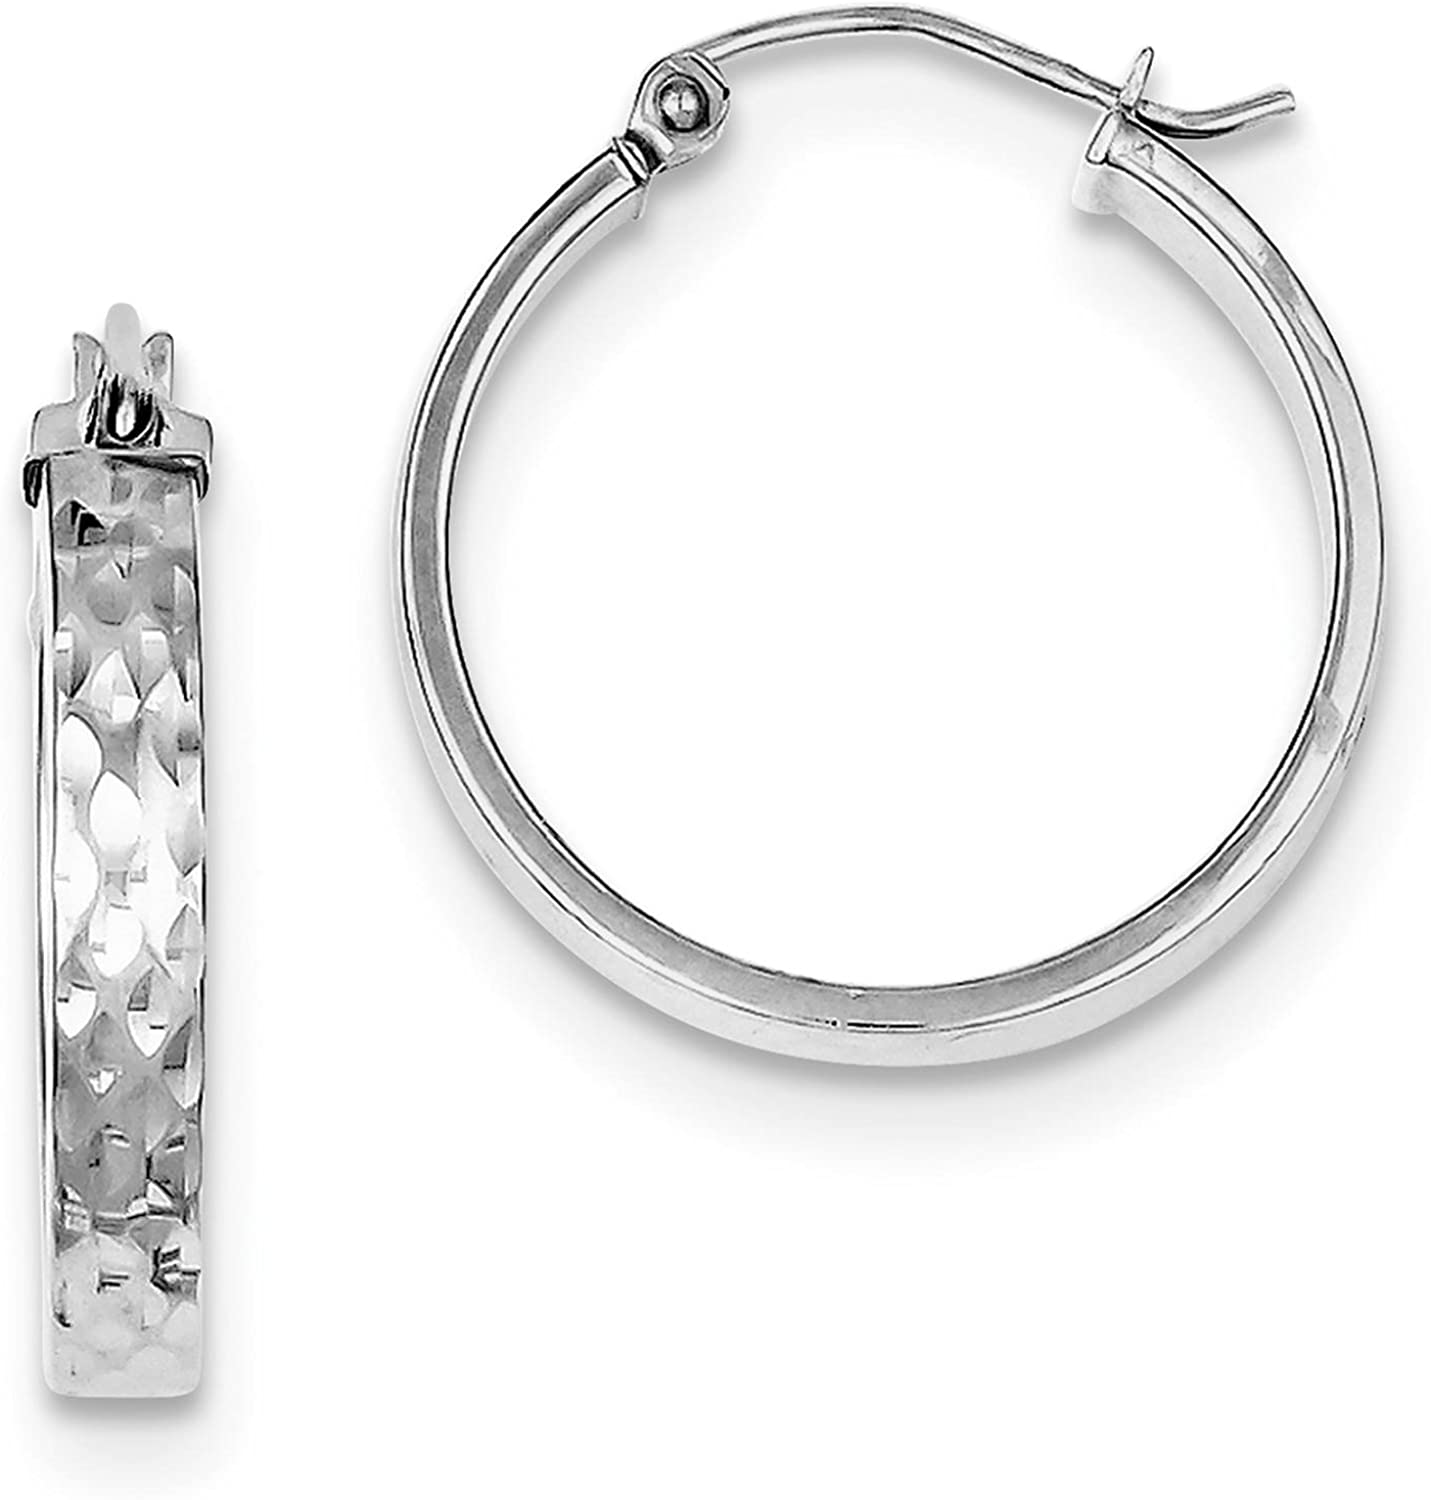 925 Sterling Silver Rhodium-plated Polished /& Diamond-cut Round Hoop Earrings